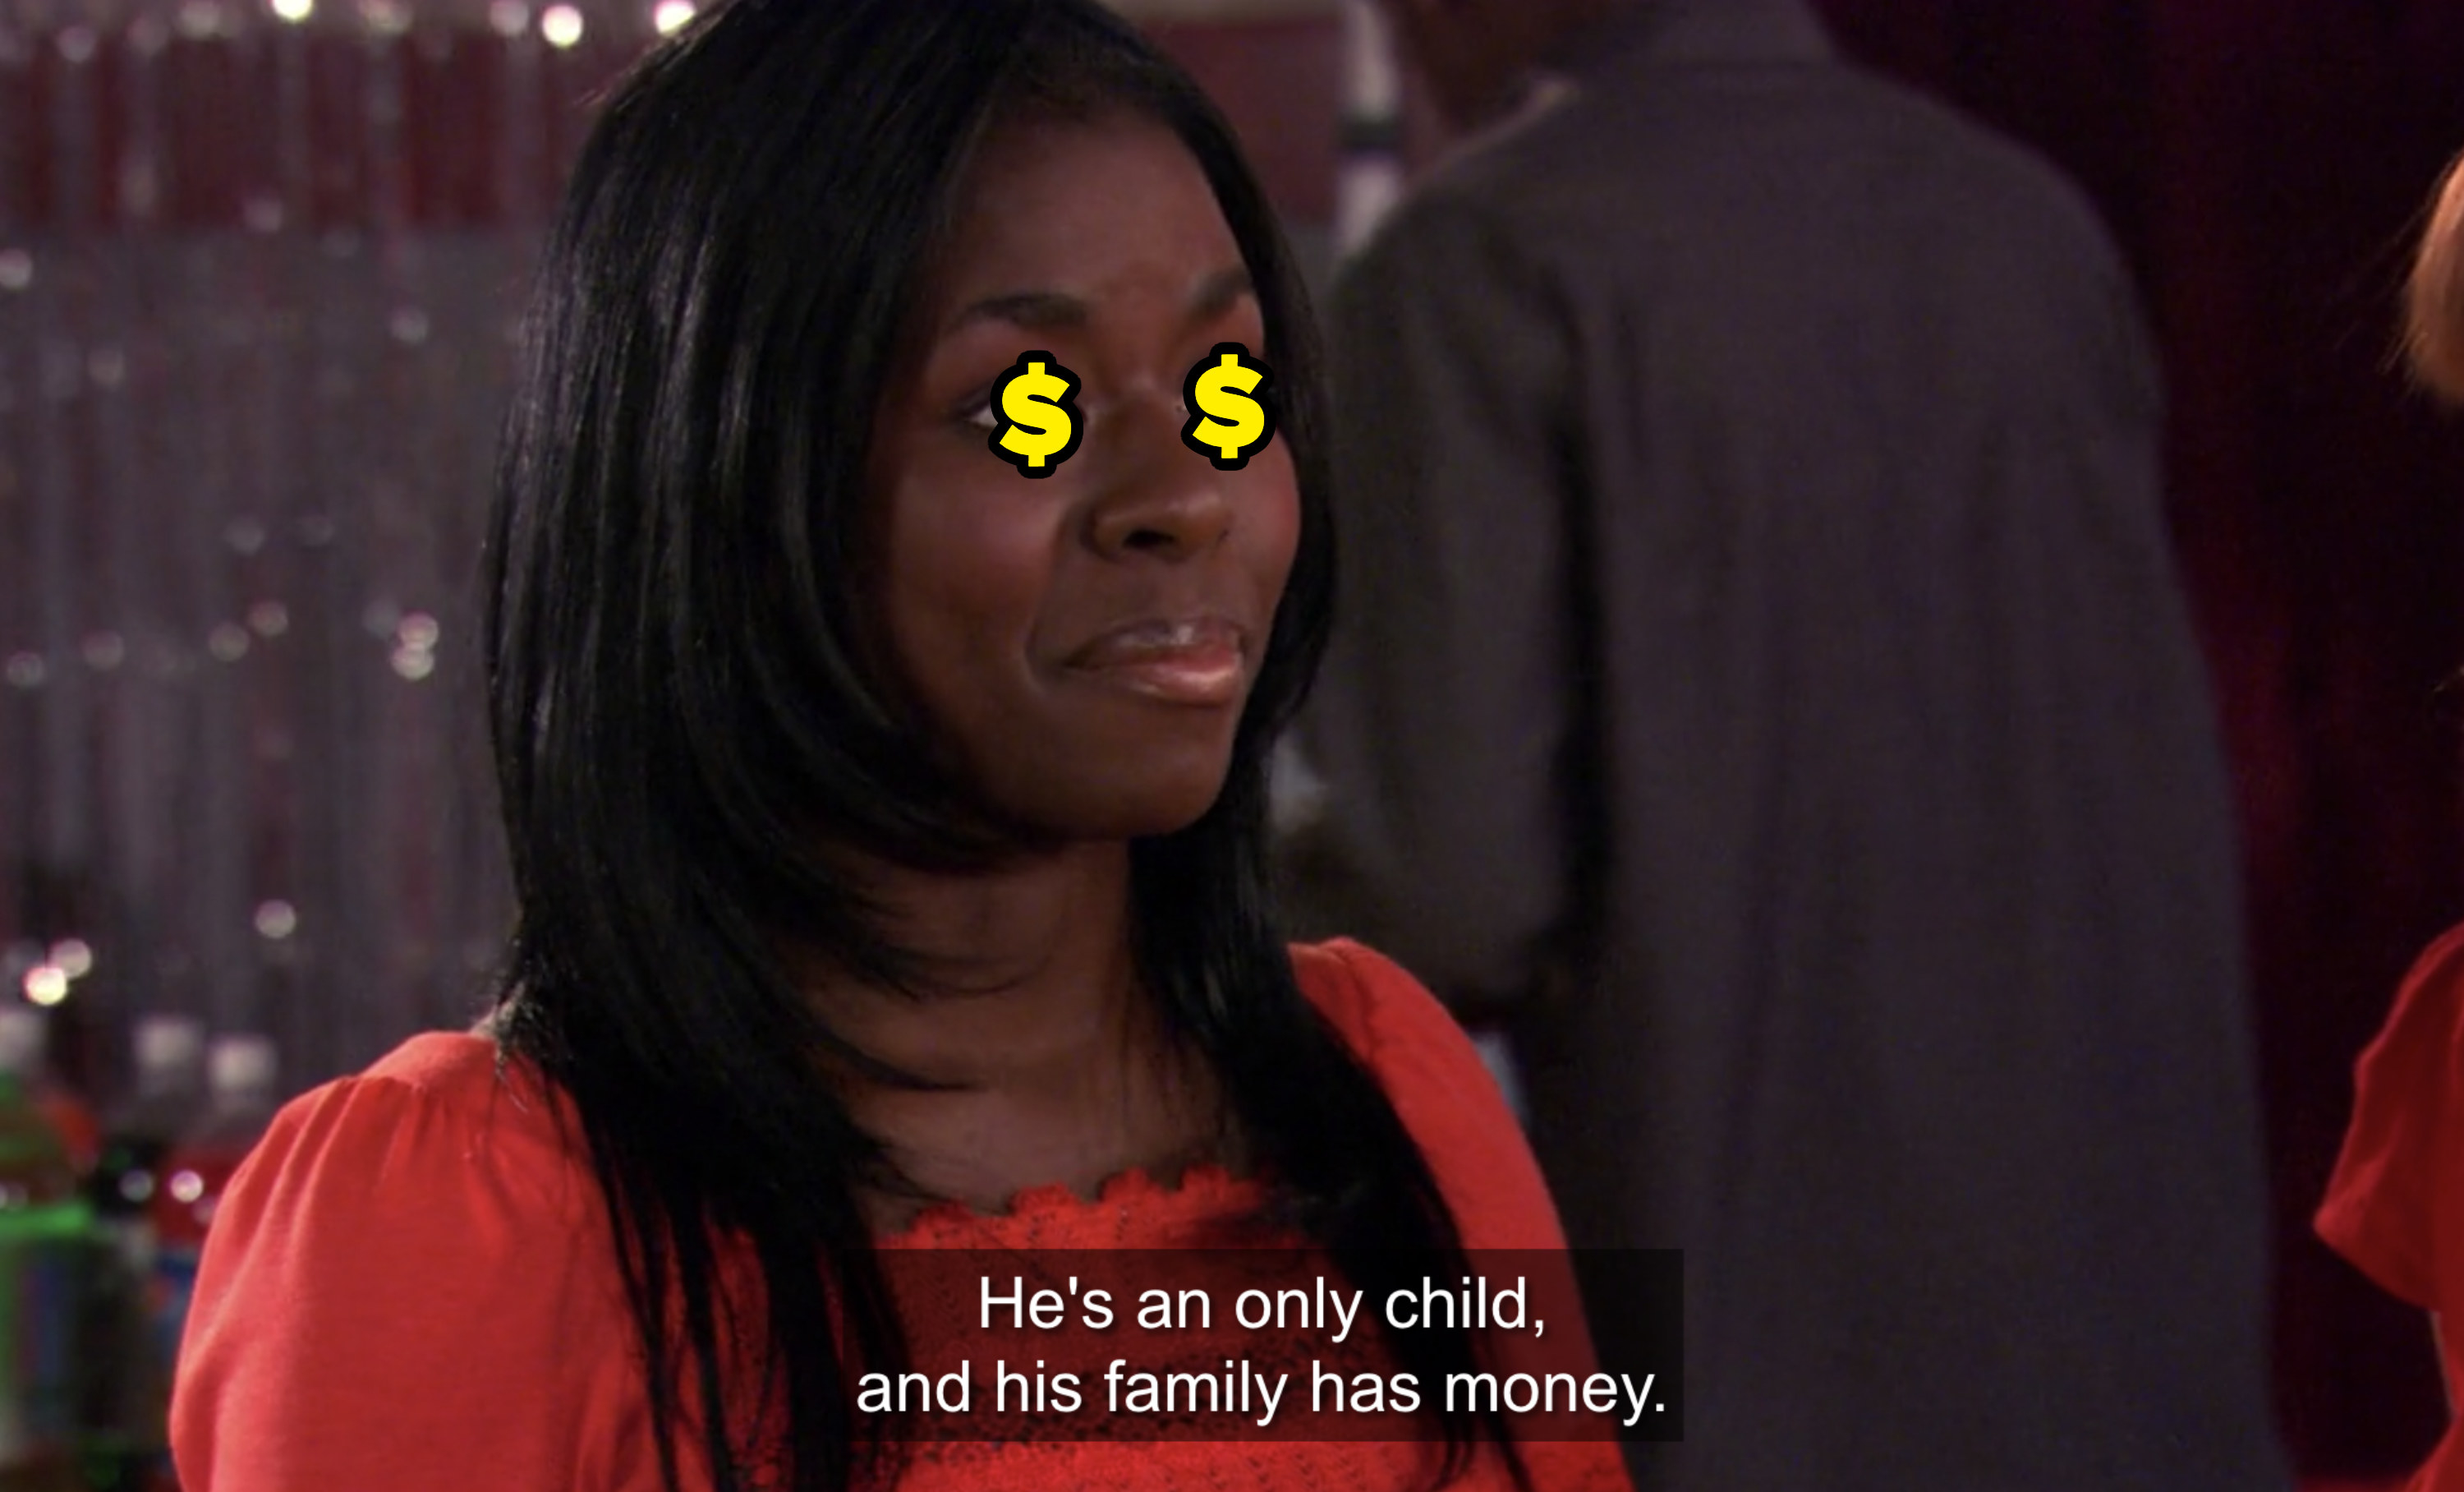 amy's friend telling her he's an only child and his family has money